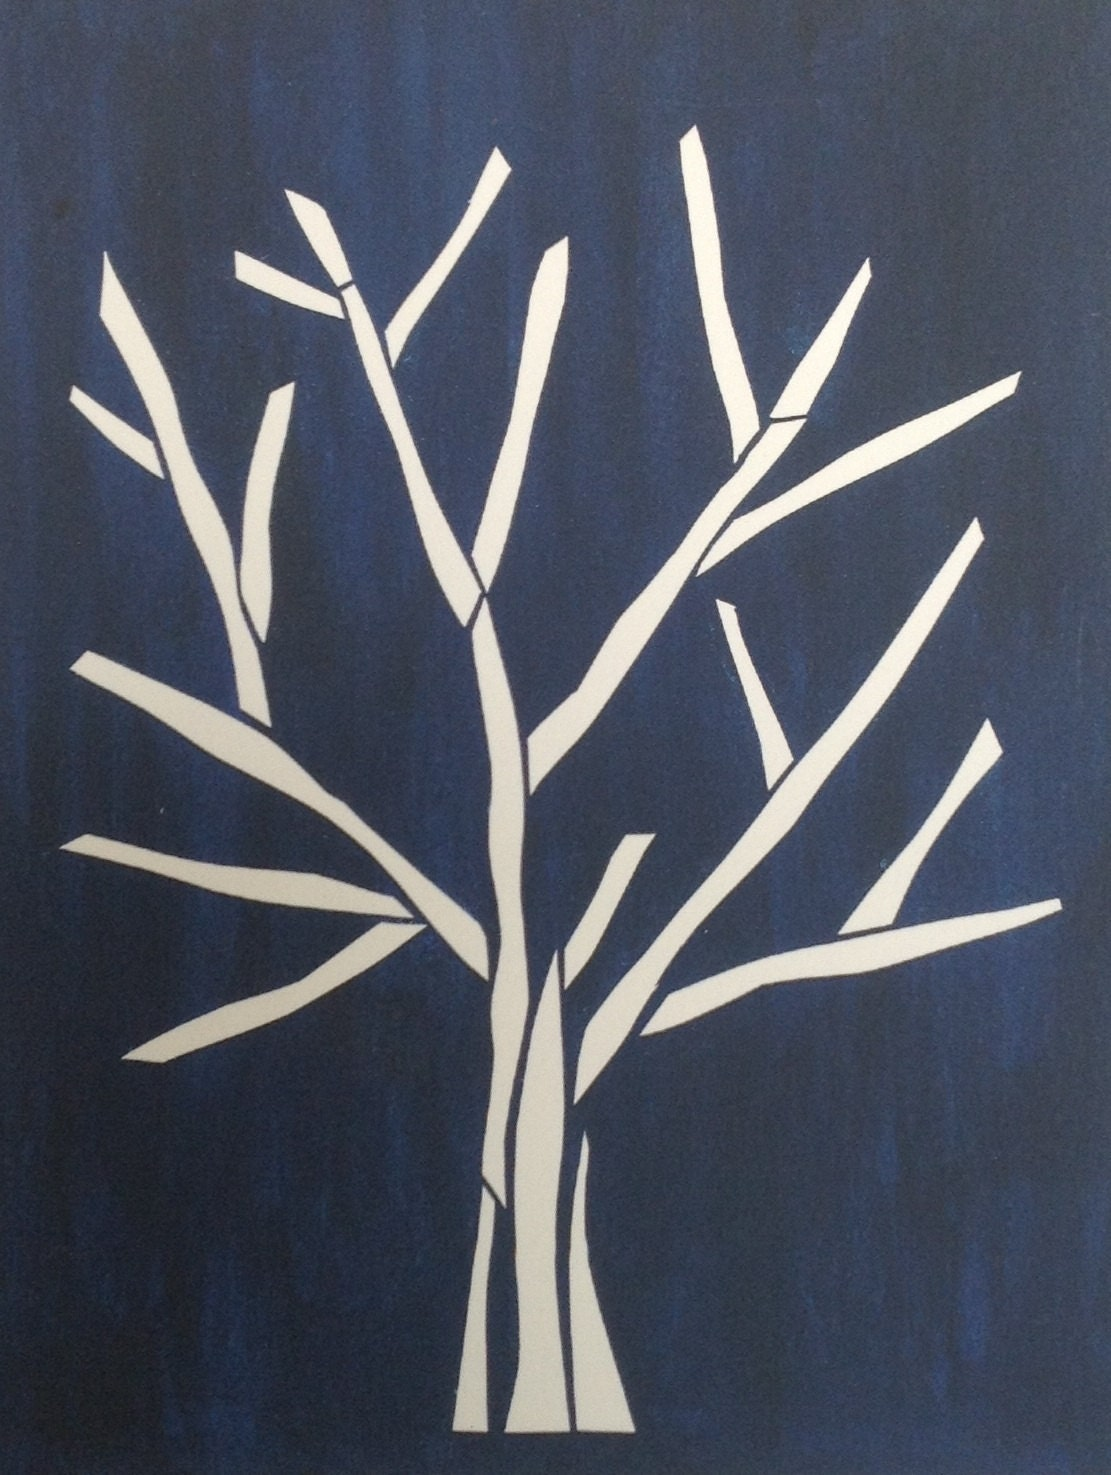 Paper Tree Blue, simple paper collage, bare branches, small print, navy blue paint - plumwaterdesigns